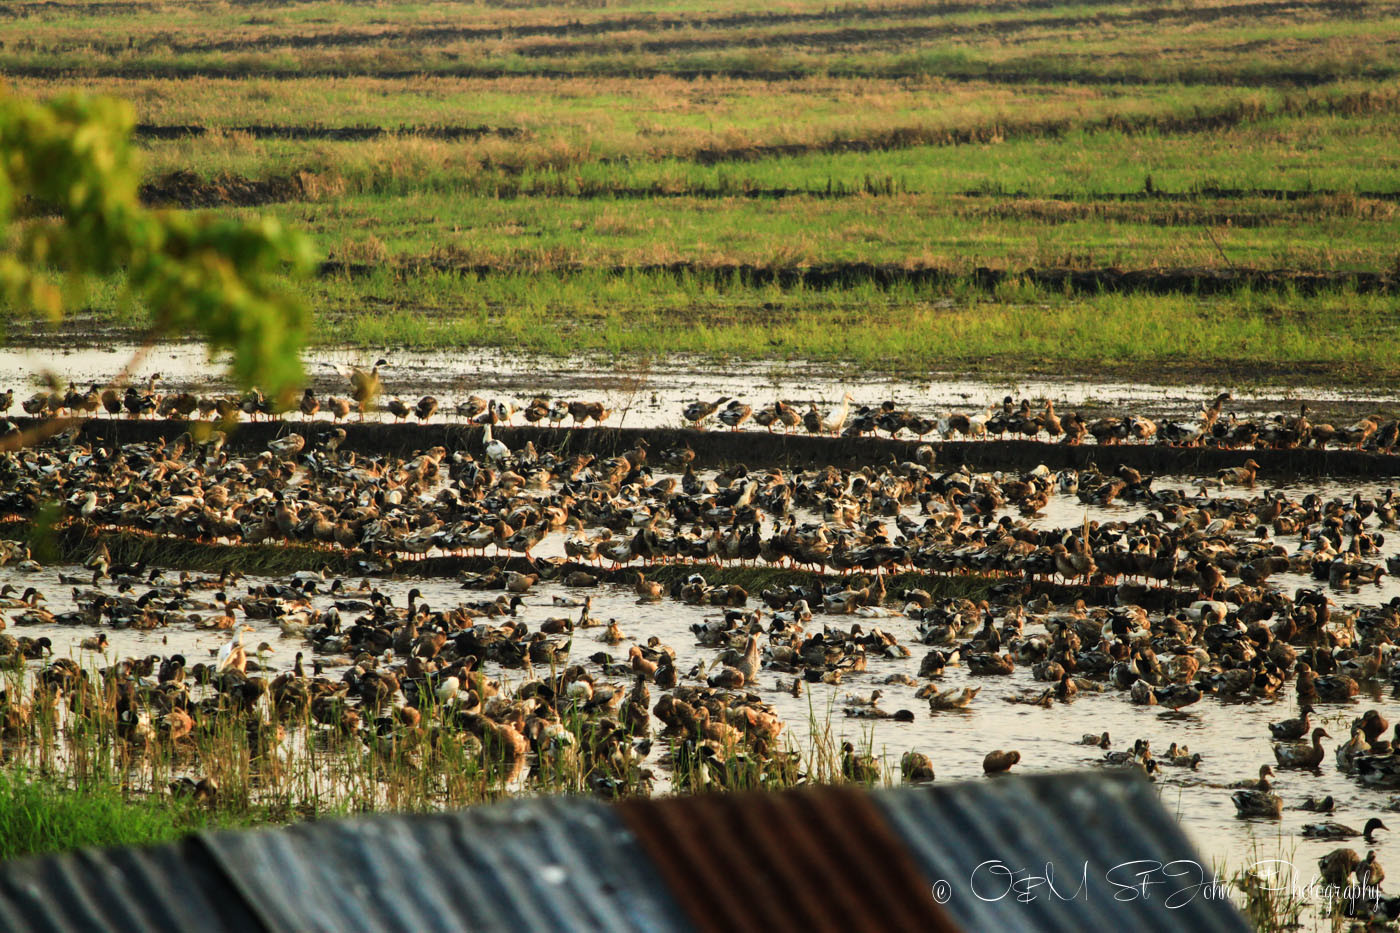 Flock of birds over the rice paddies in Kerala Backwaters. India